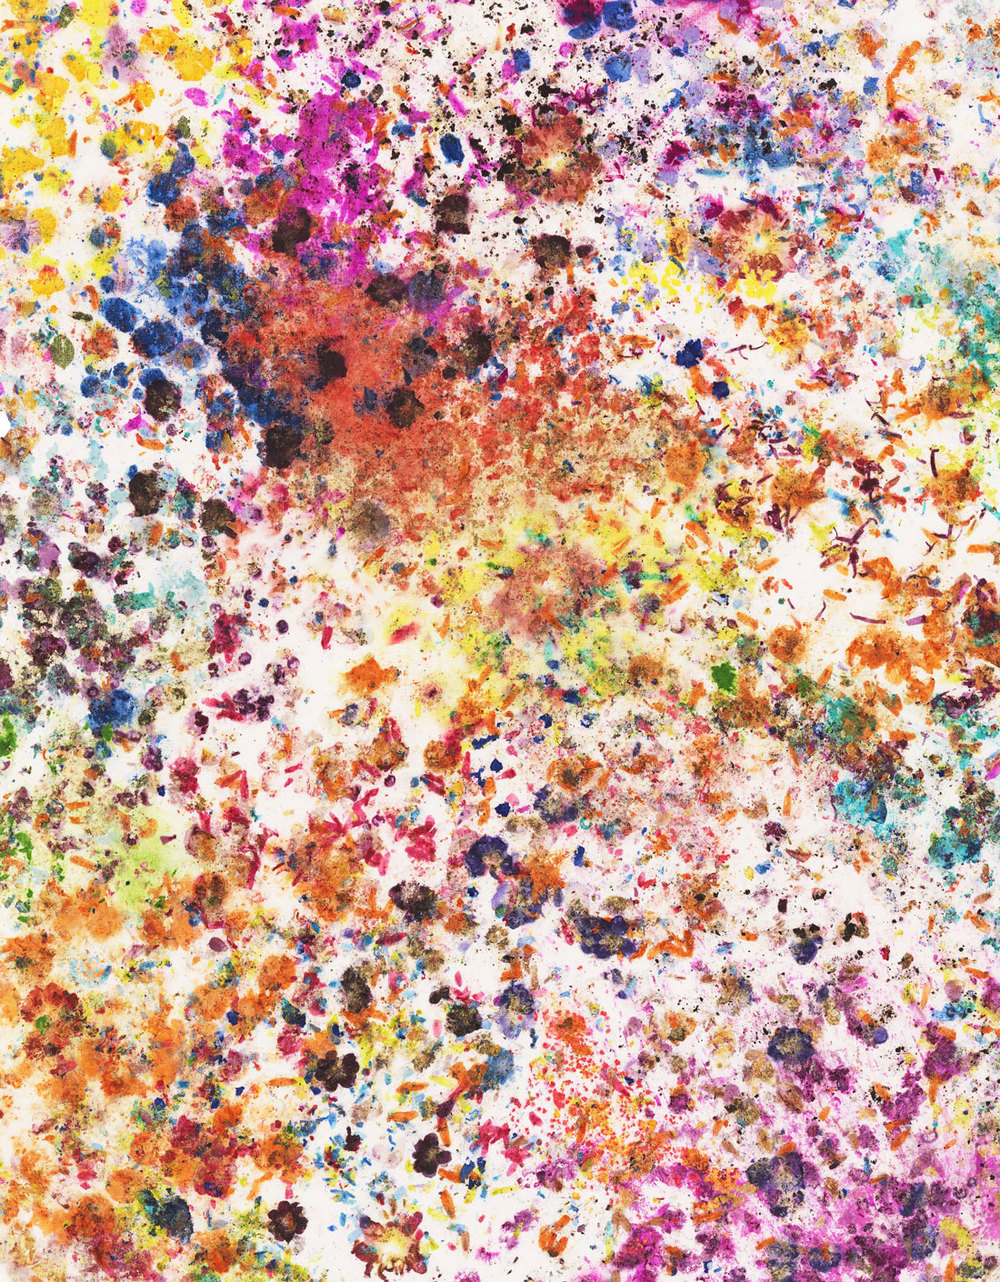 Dan Colen-Orgasm Addict, 2014 Flowers on bleached Belgian linen 63.75 x 49.75 in (161.93 x 126.37 cm) Estimate $125,000 - $140,000